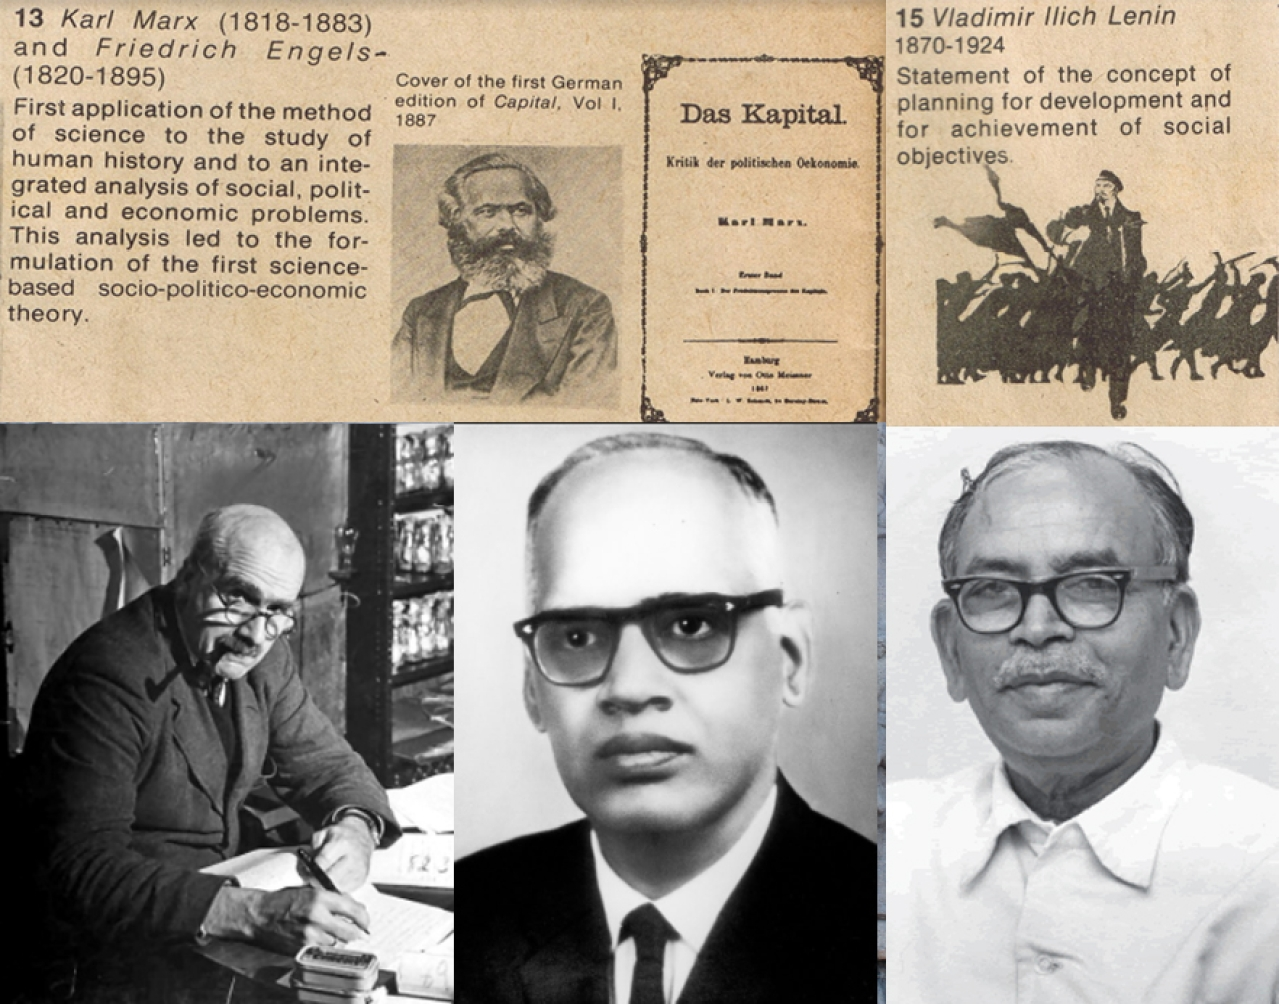 While individual Indian scientists (below) have significantly contributed to positive interaction of science and Indian culture, Nehruvian establishment promoted only pro-Marxist propaganda as 'scientific temper'.